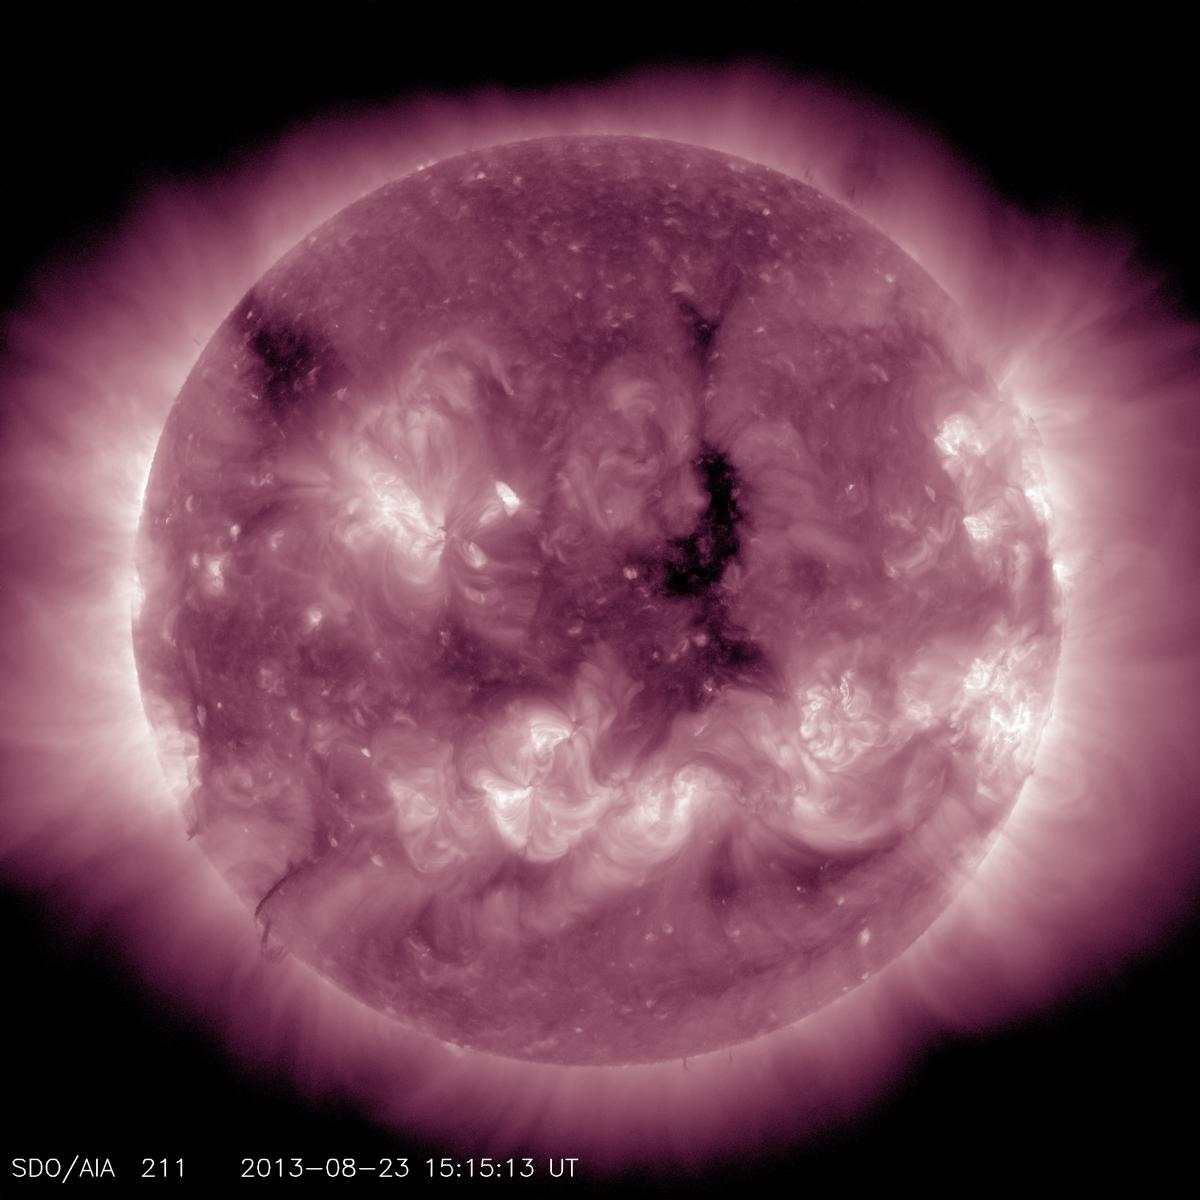 This channel highlights the active region of the outer atmosphere of the sun — the corona. Active regions, solar flares and coronal mass ejections appear bright here.